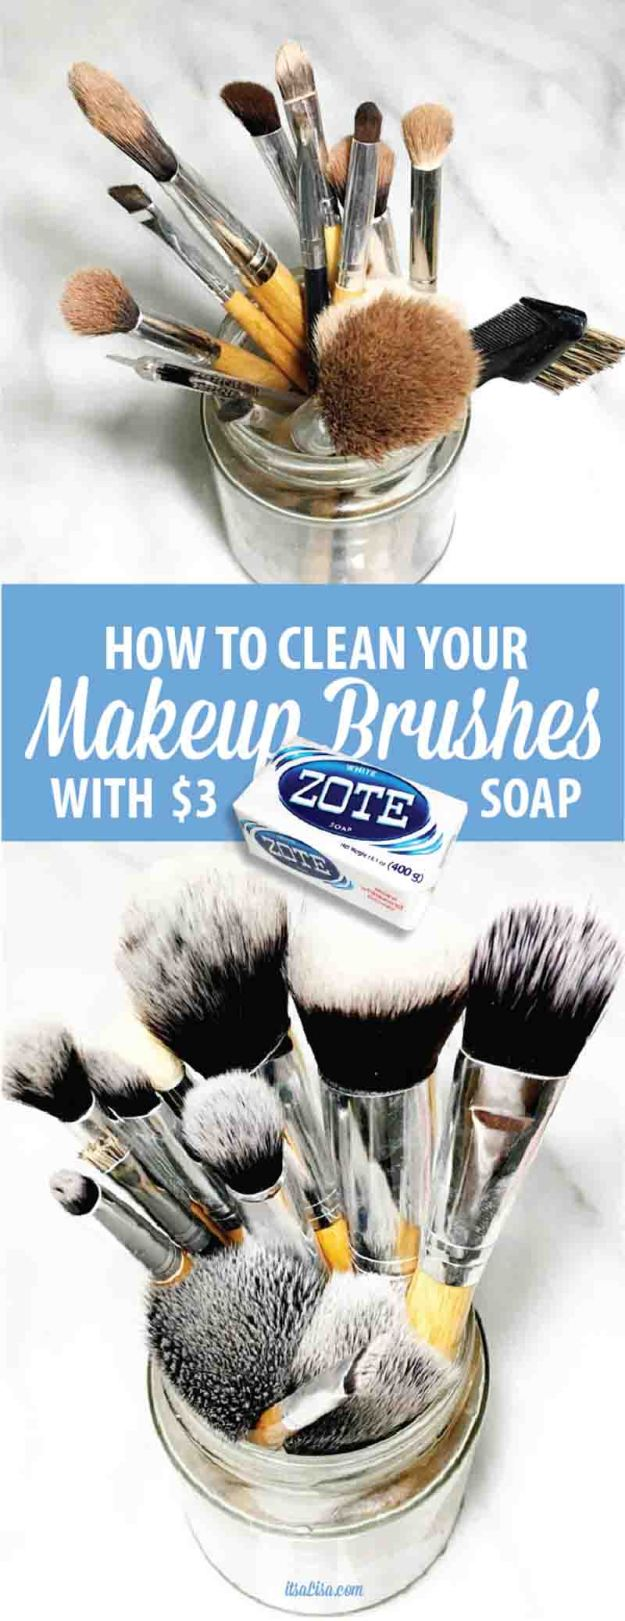 How To Wash Makeup Brushes With Zote Soap - This bright & quick soap makes cleaning your brushes a breeze! Less than 10 minutes to fluffy white makeup brushes!